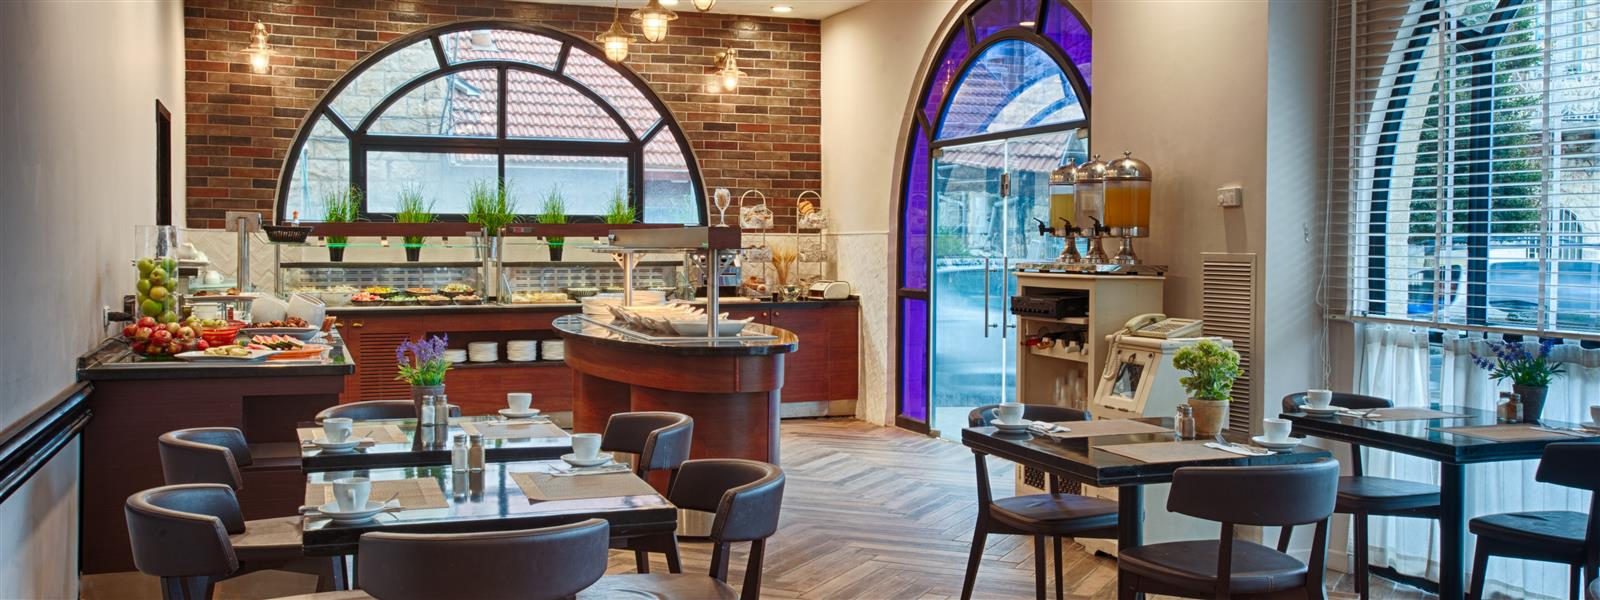 The Restaurant in Eldan Hotel - Boutique hotel in Jerusalem